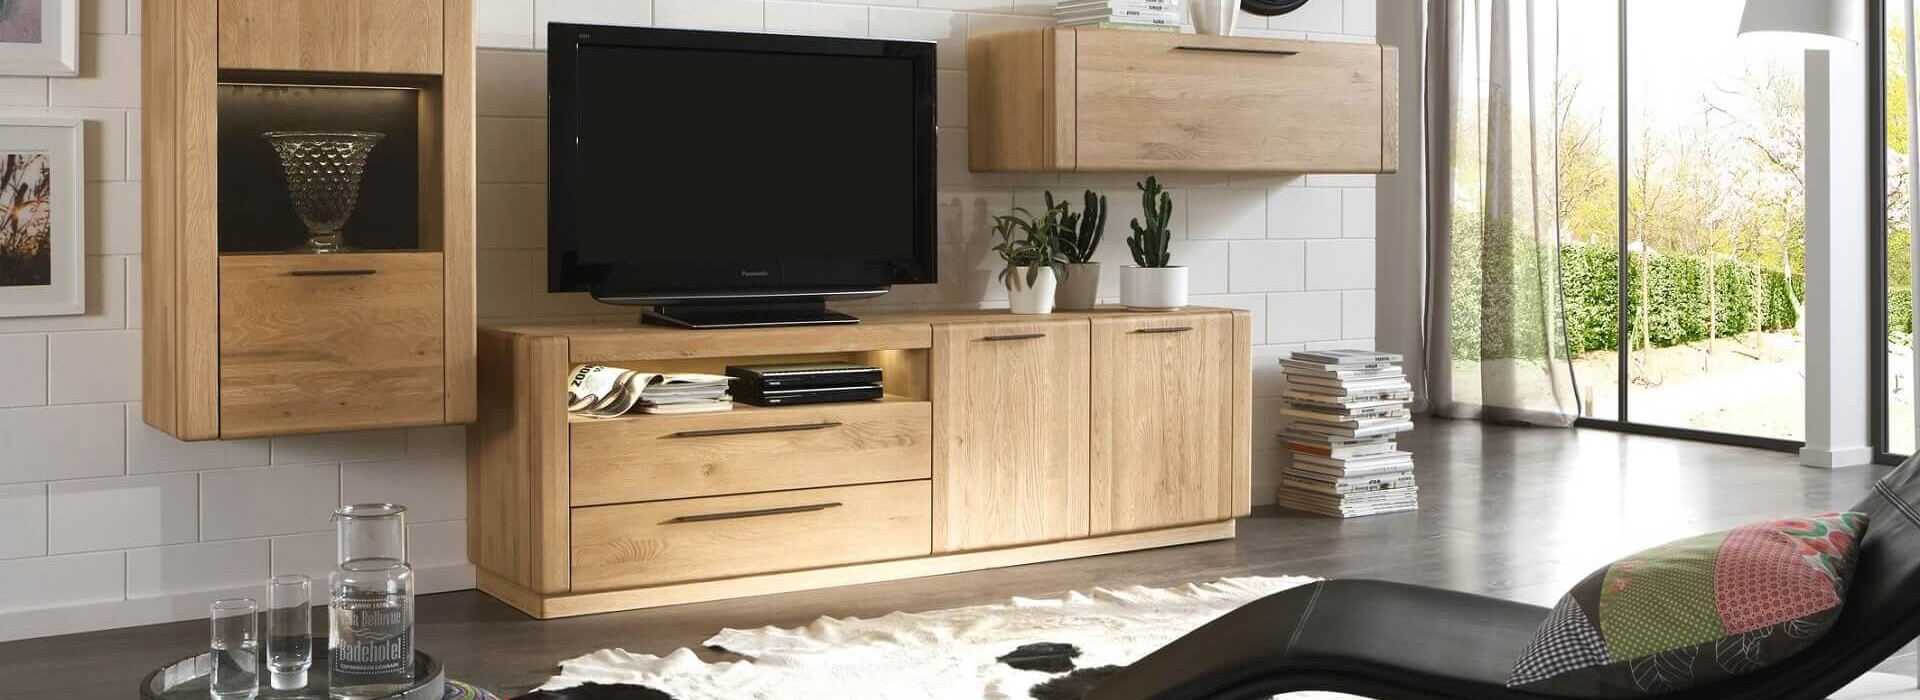 massivholzprodukte pflegen holz vom fach. Black Bedroom Furniture Sets. Home Design Ideas